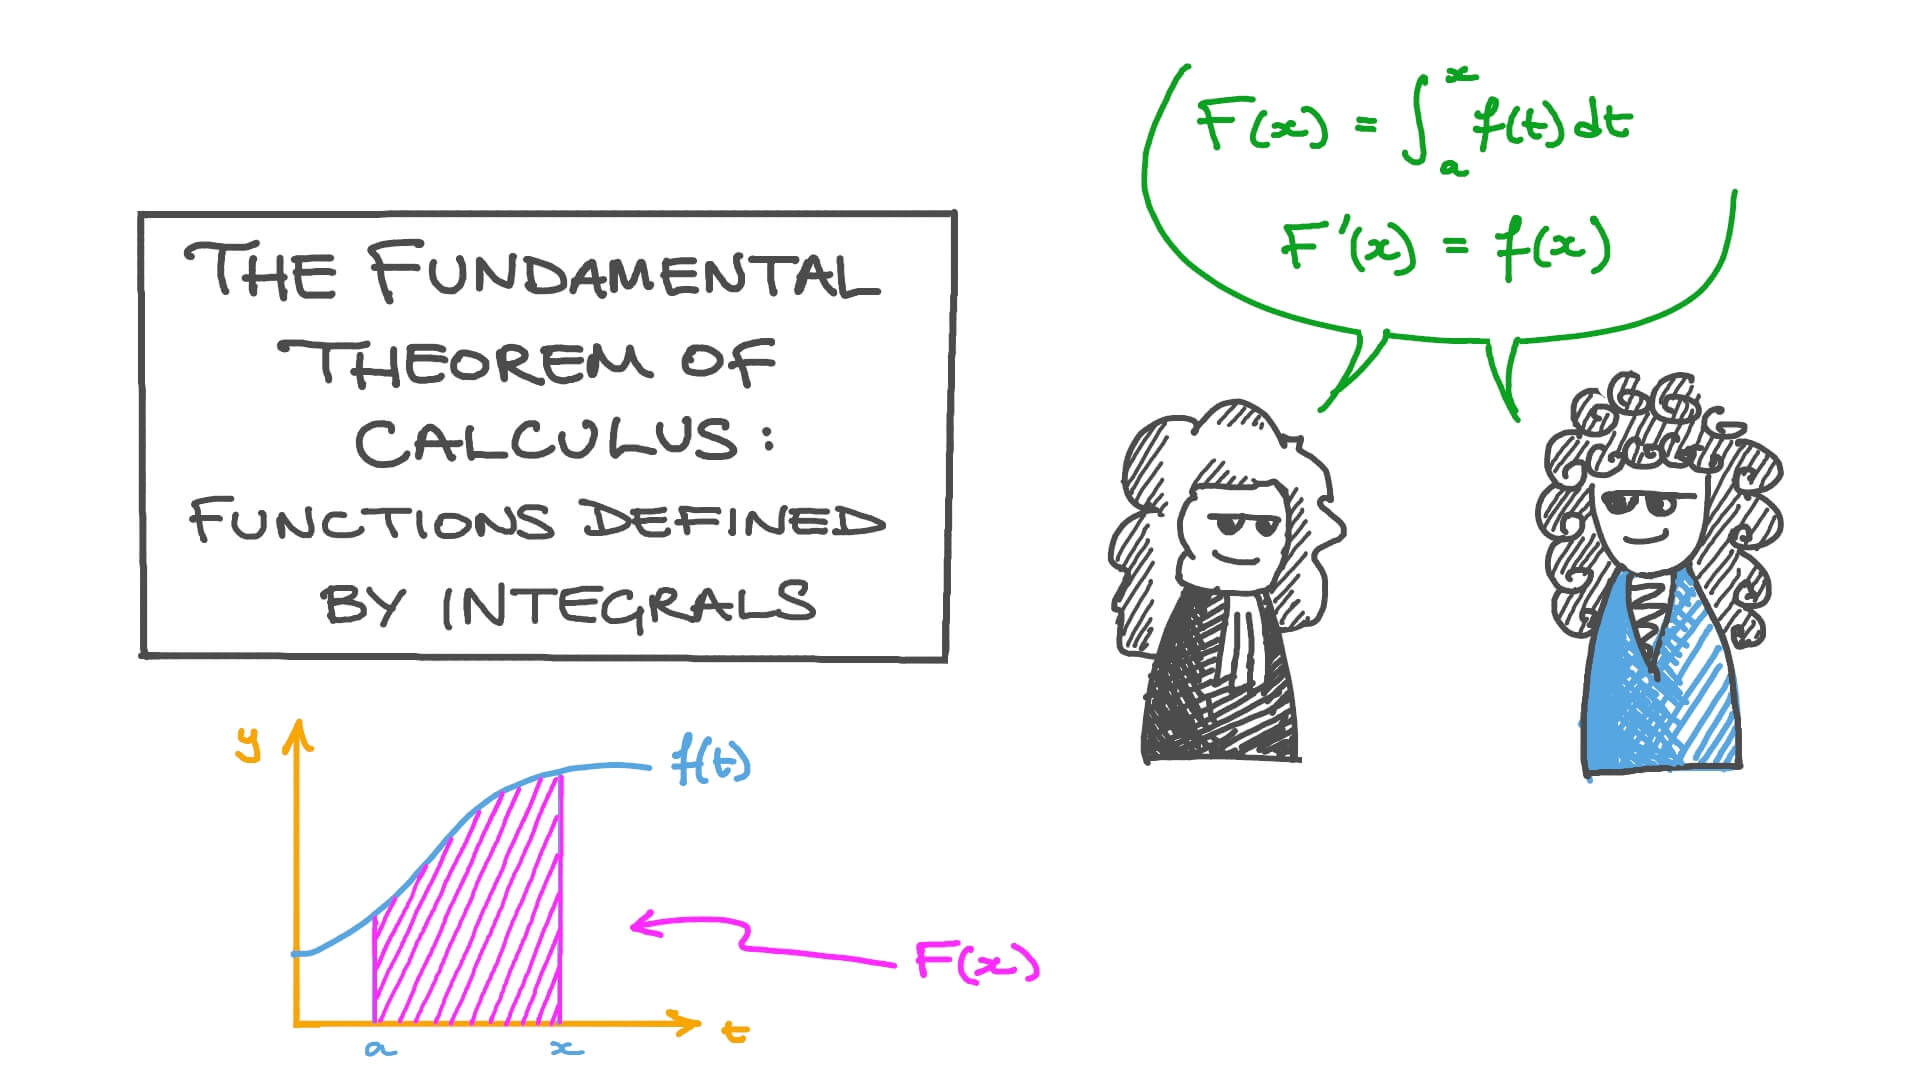 The Fundamental Theorem of Calculus: Functions Defined by Integrals